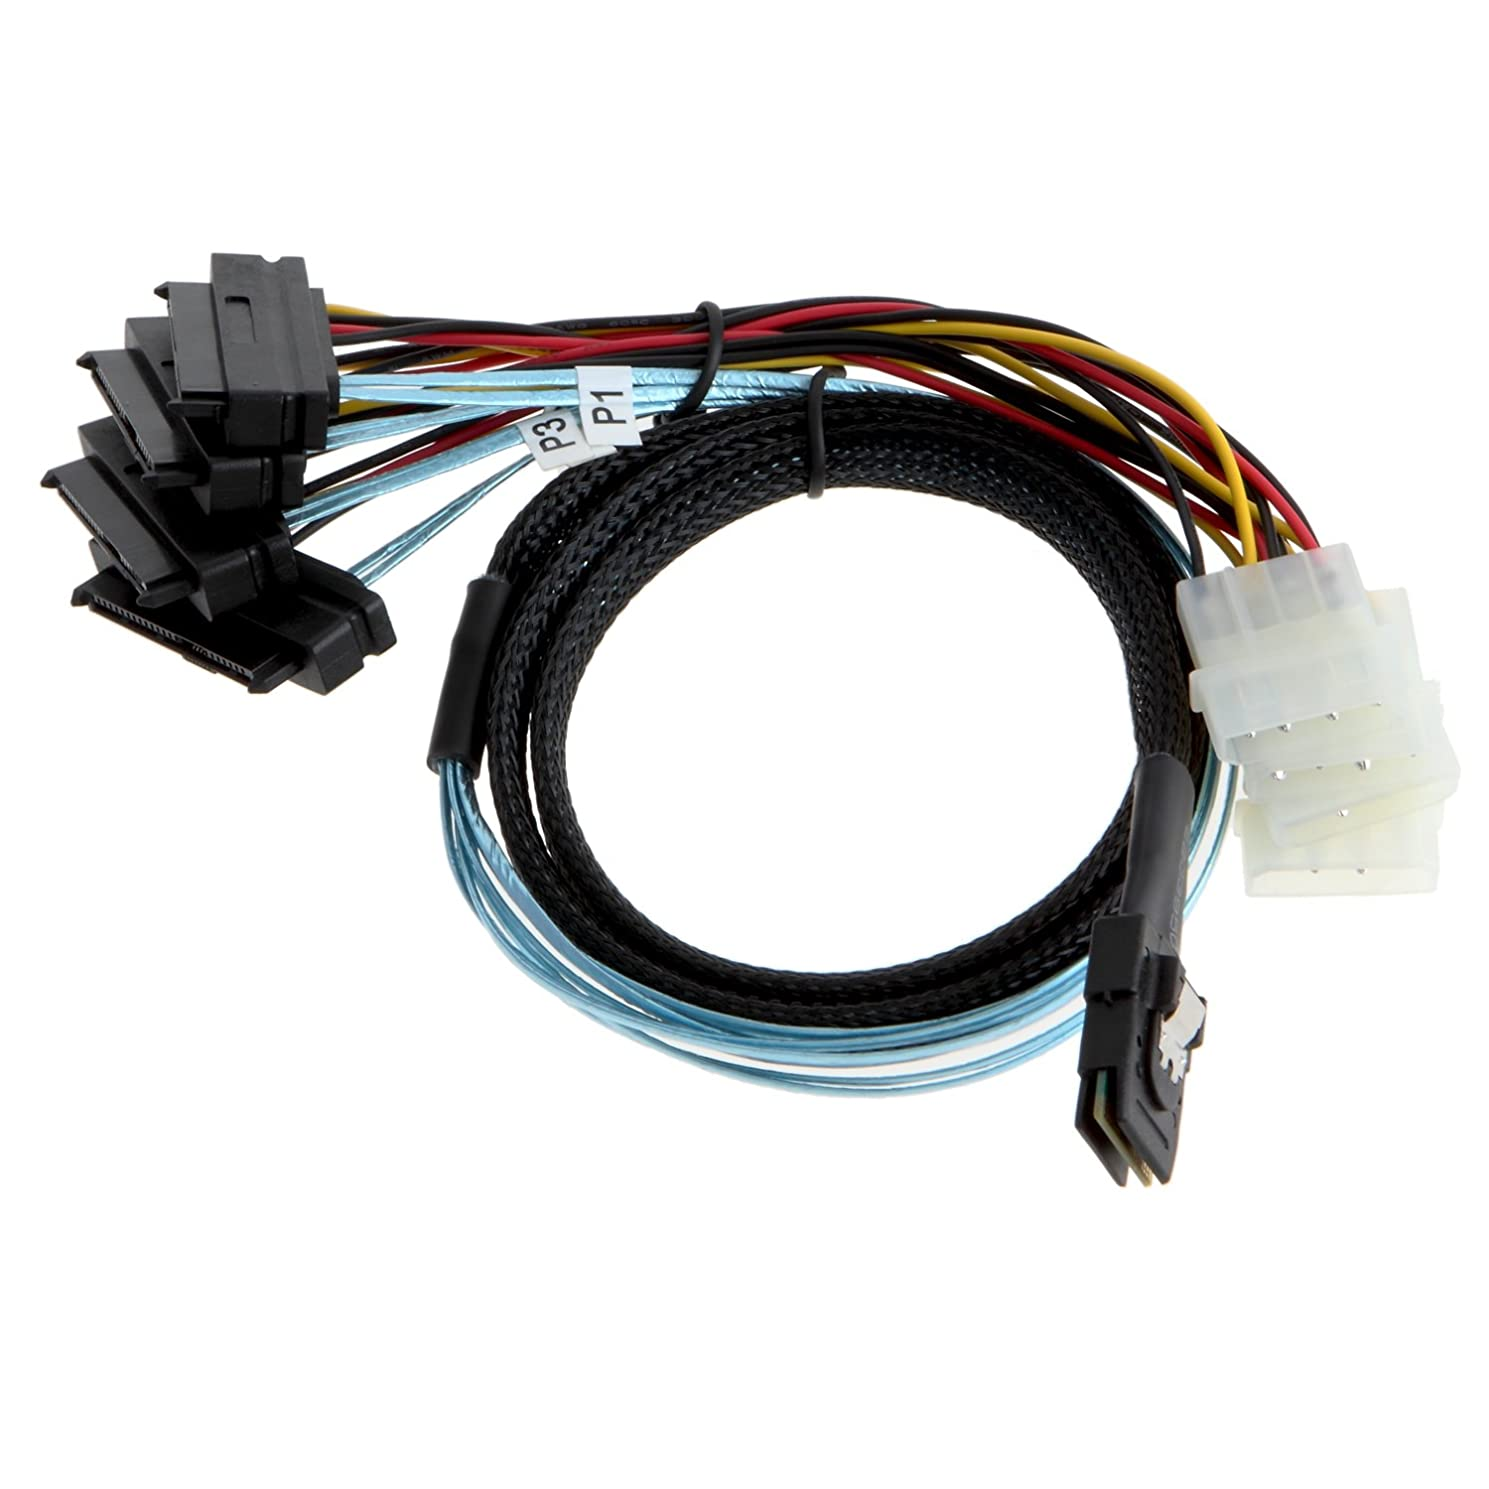 CableCreation Mini SAS 36Pin (SFF-8087) Male to 4x SAS 29 (SFF-8482) female with 4pin Power Cable, Mini SAS Host to 4 SAS Target Cable, 3.3FT